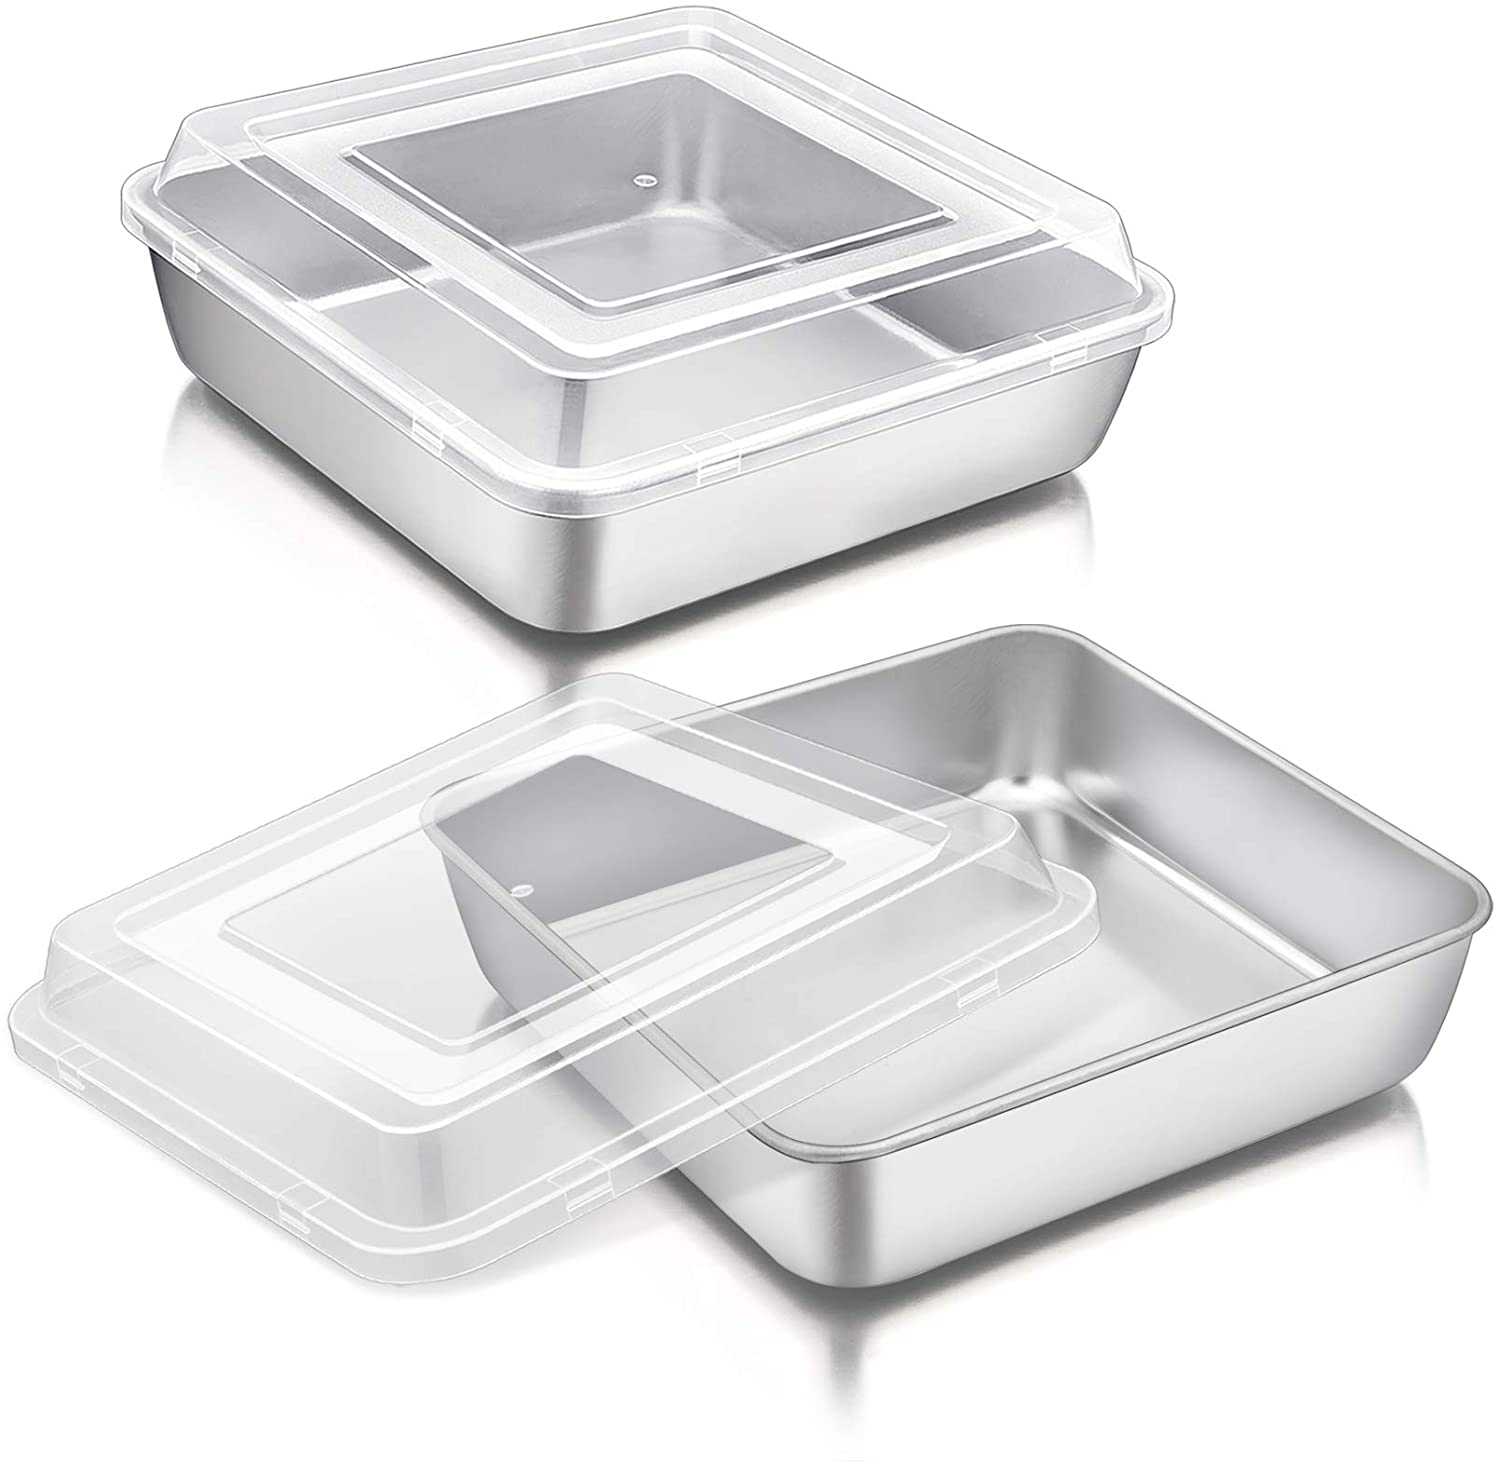 8 Inch Square Cake Pan with Lid